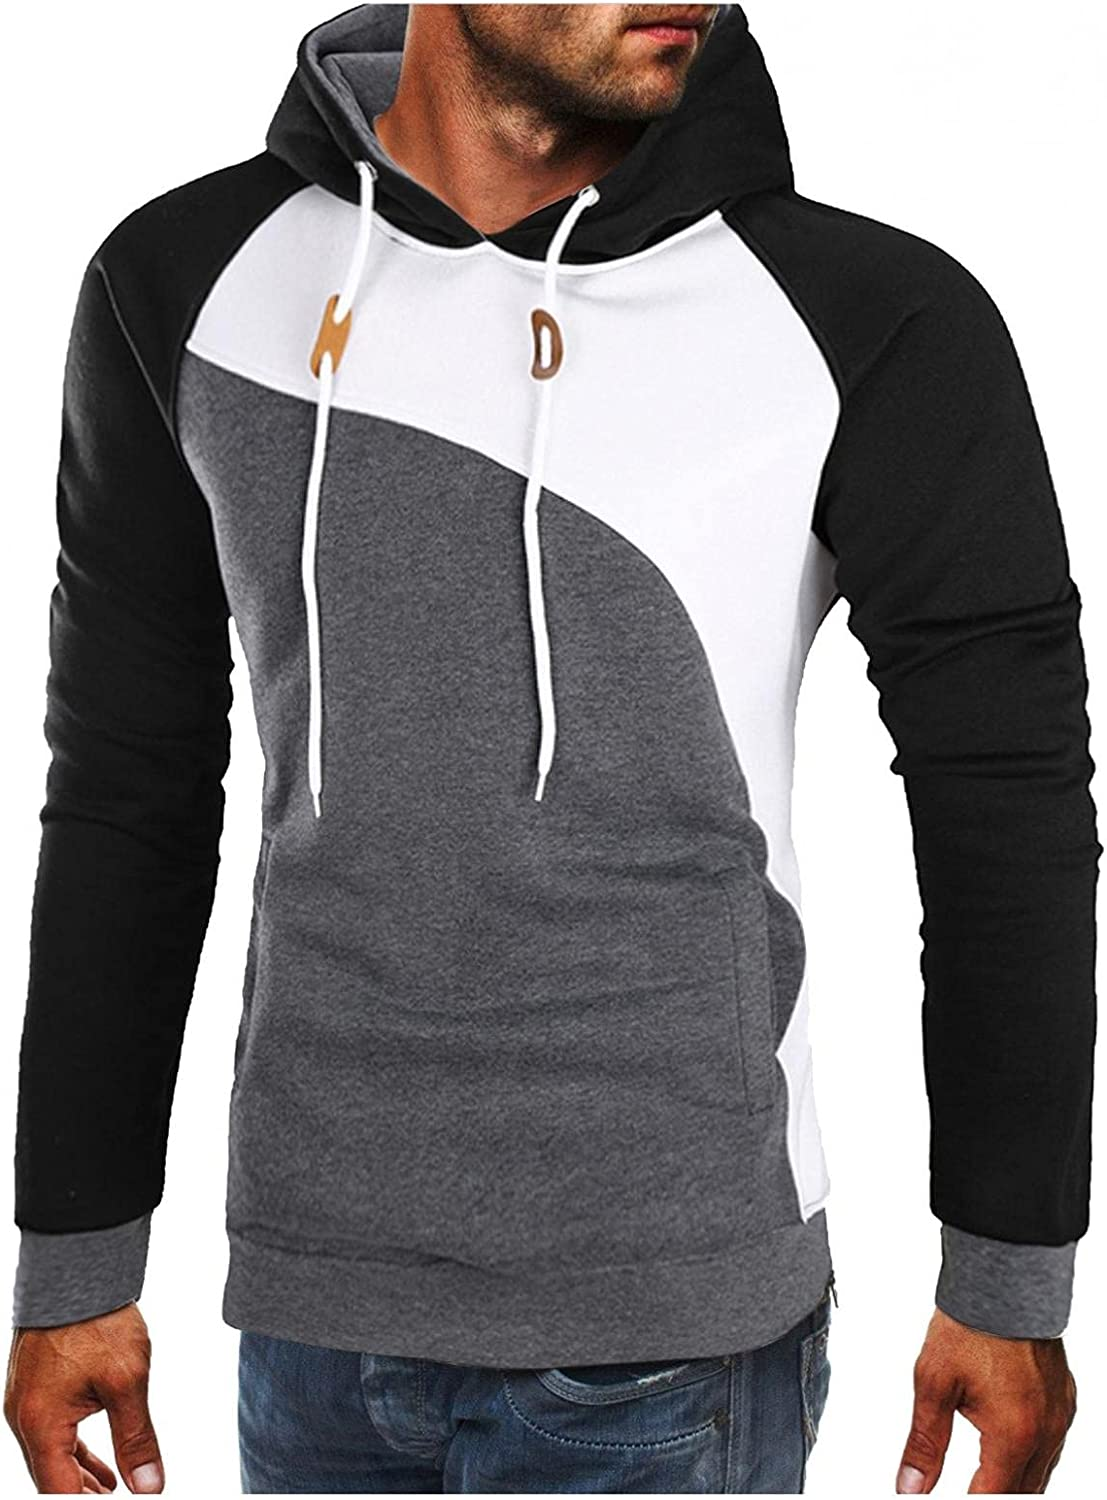 Hoodies for Men Mens Autumn And Winter Color Matching Hooded Slim Sweater Hoodie Crewneck Long Sleeve Fashion Hoodies